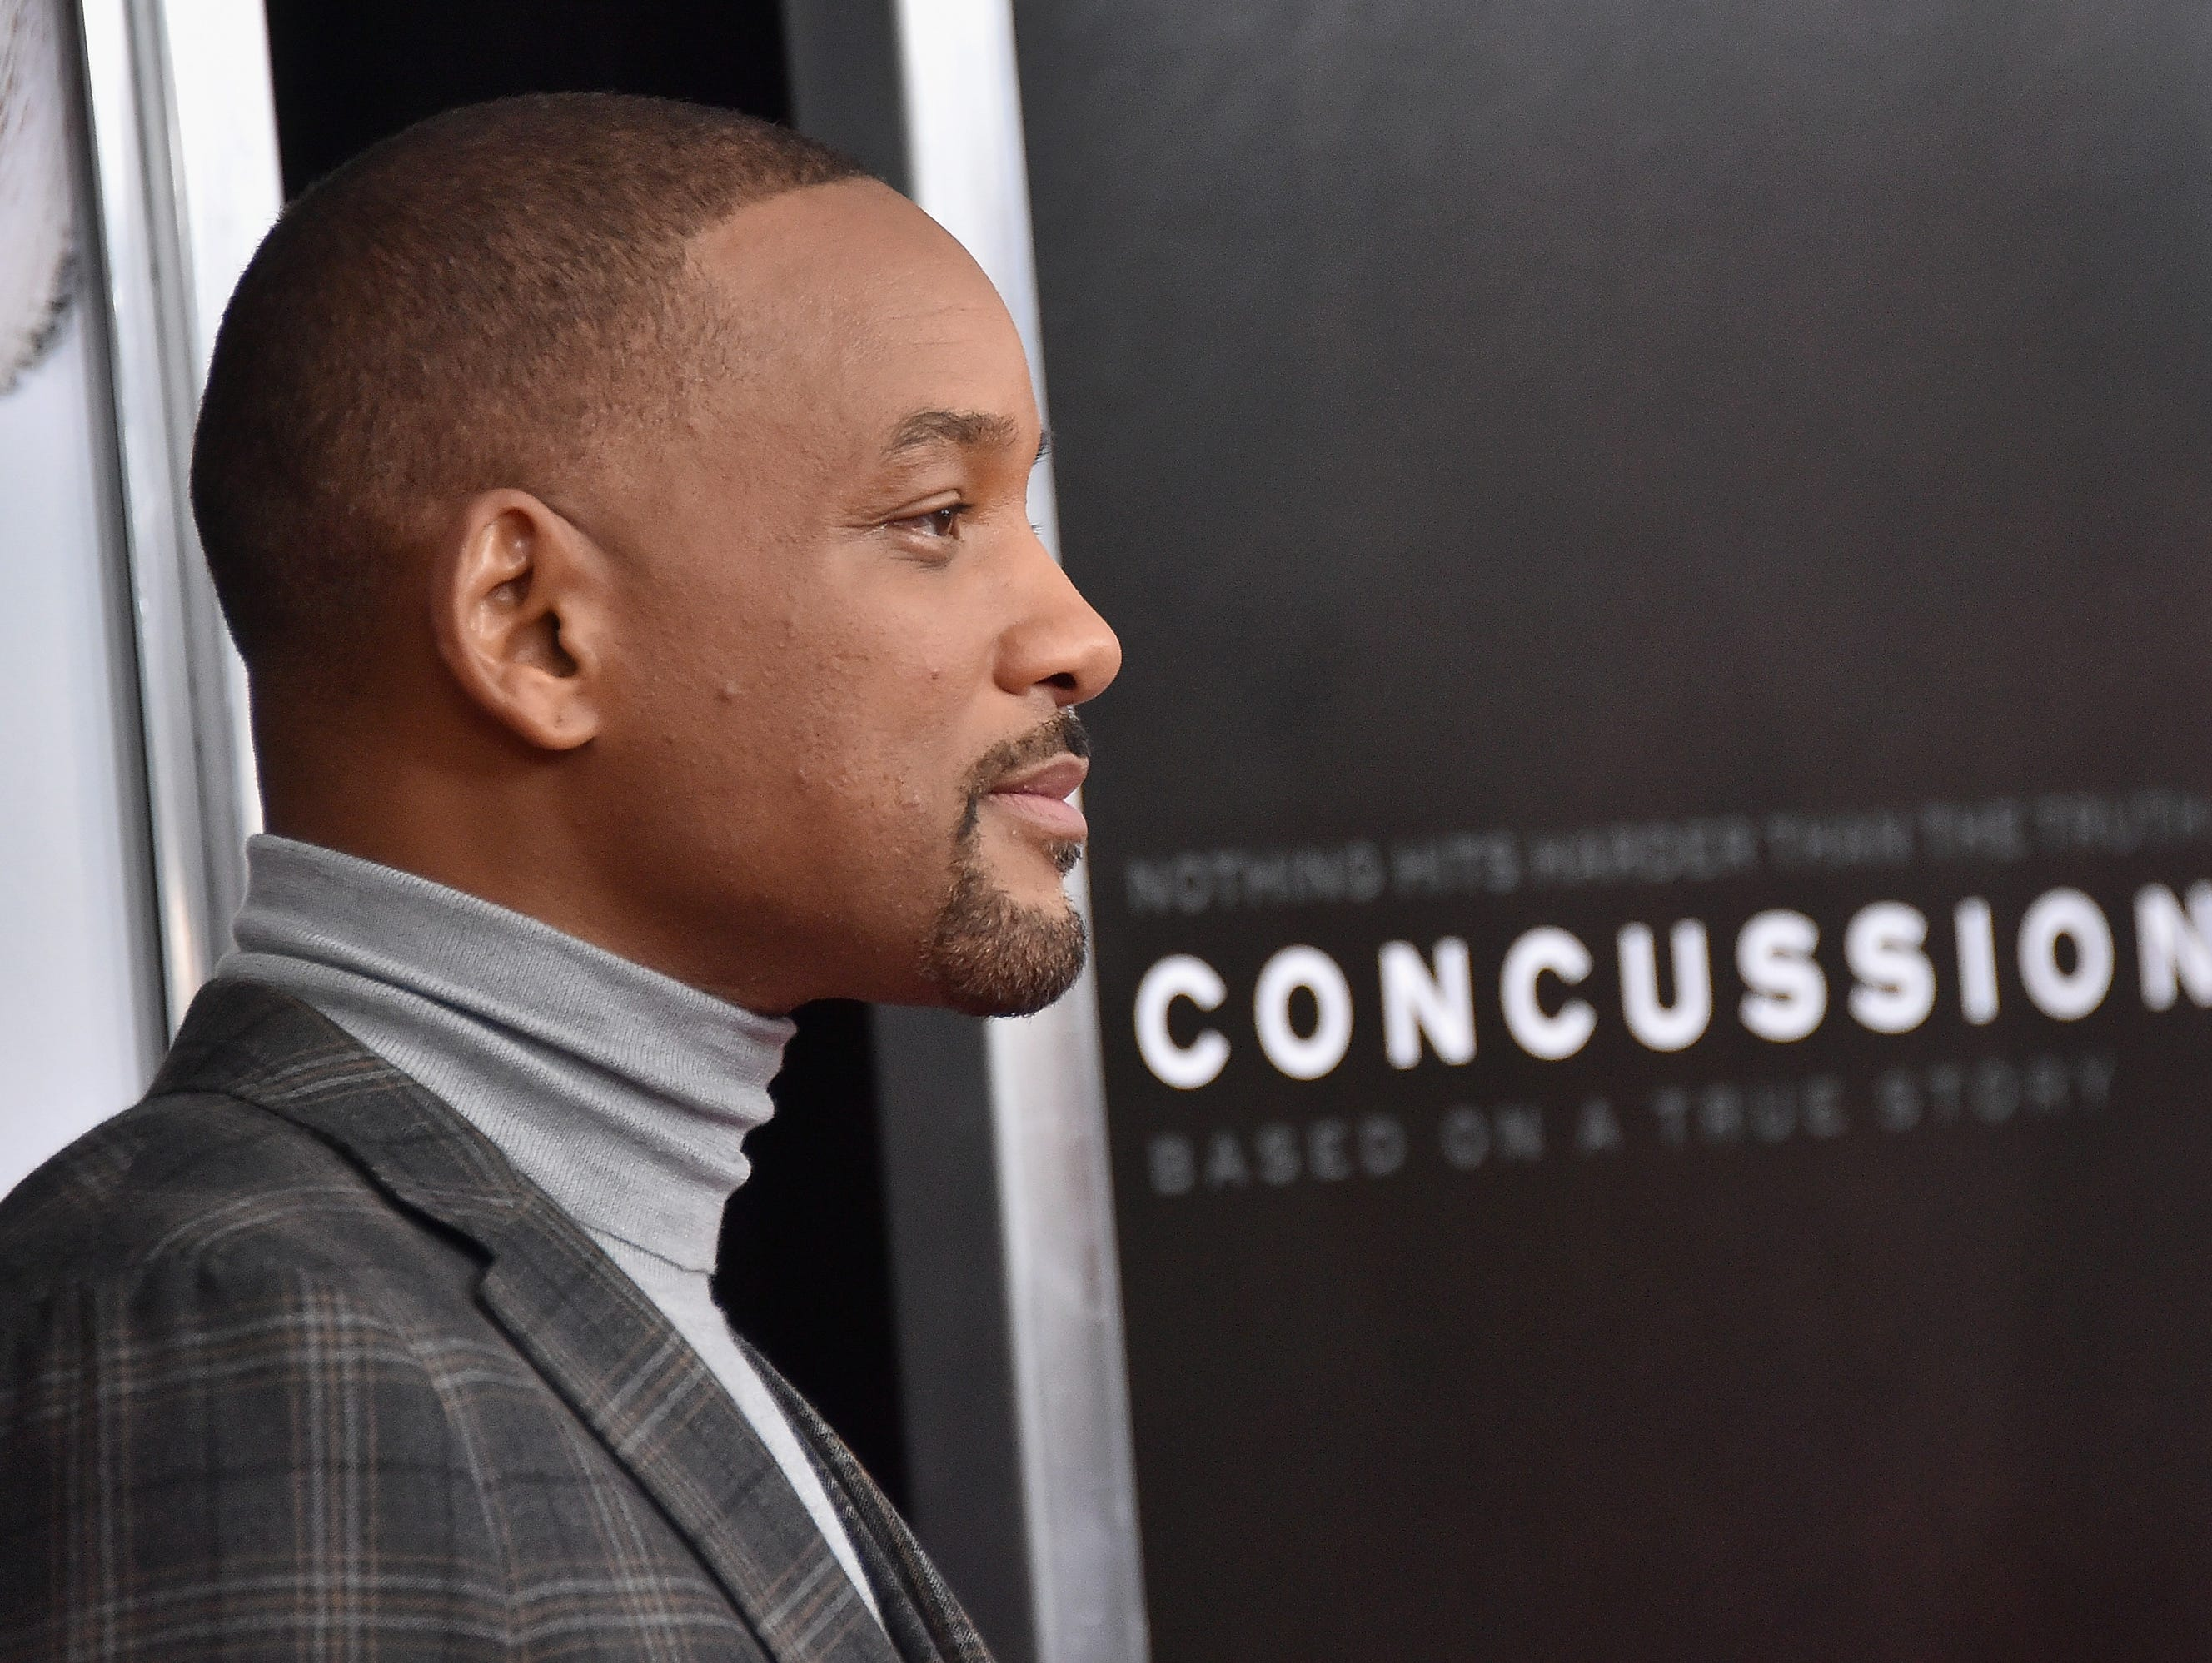 """501686900.jpg NEW YORK, NY - DECEMBER 16: Actor Will Smith attends the """"Concussion"""" New York Premiere at AMC Loews Lincoln Square on December 16, 2015 in New York City. (Photo by Mike Coppola/Getty Images)"""